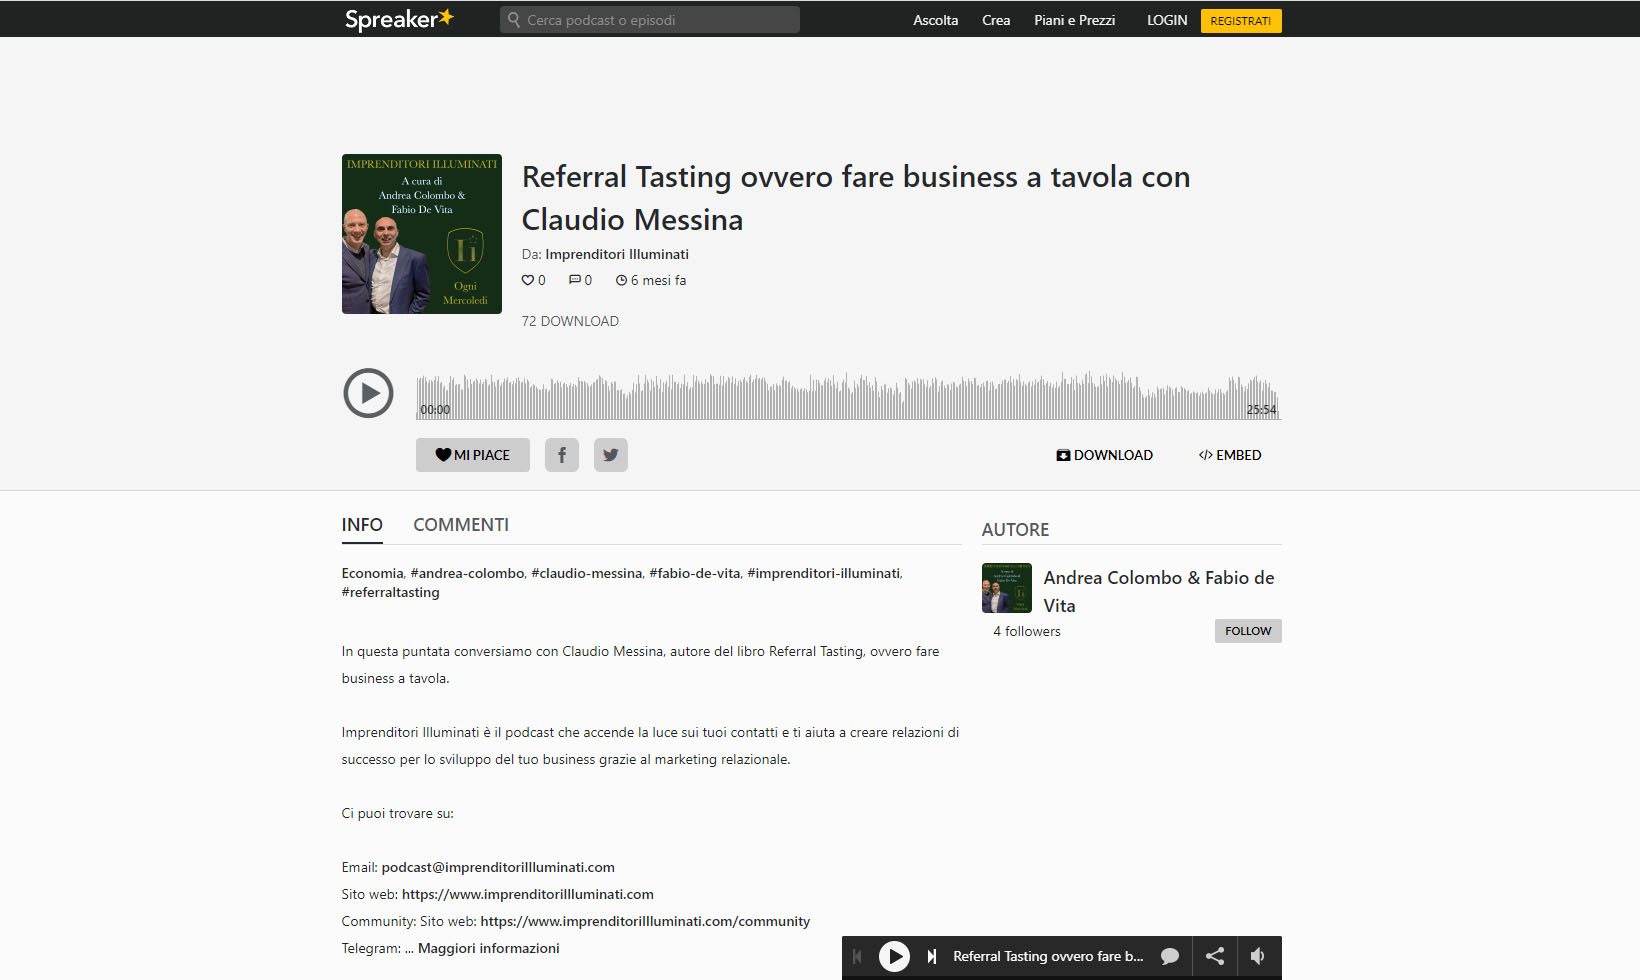 Referral Tasting - Claudio Messina - Podcast di Imprenditori Illuminati su Referral Tasting